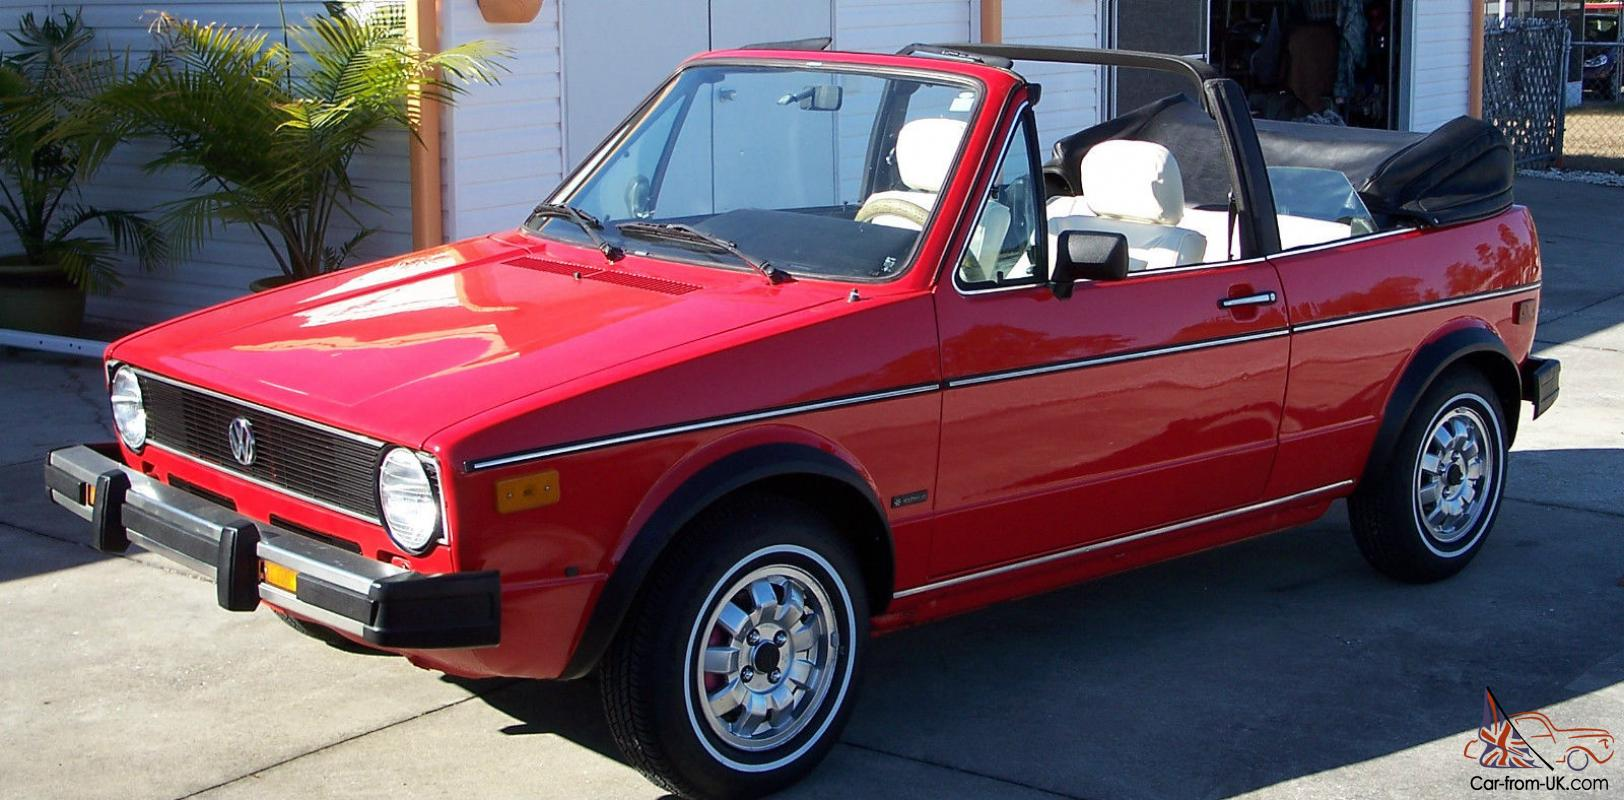 Vw Rabbit Convertible Fully Restored Red With Black Top